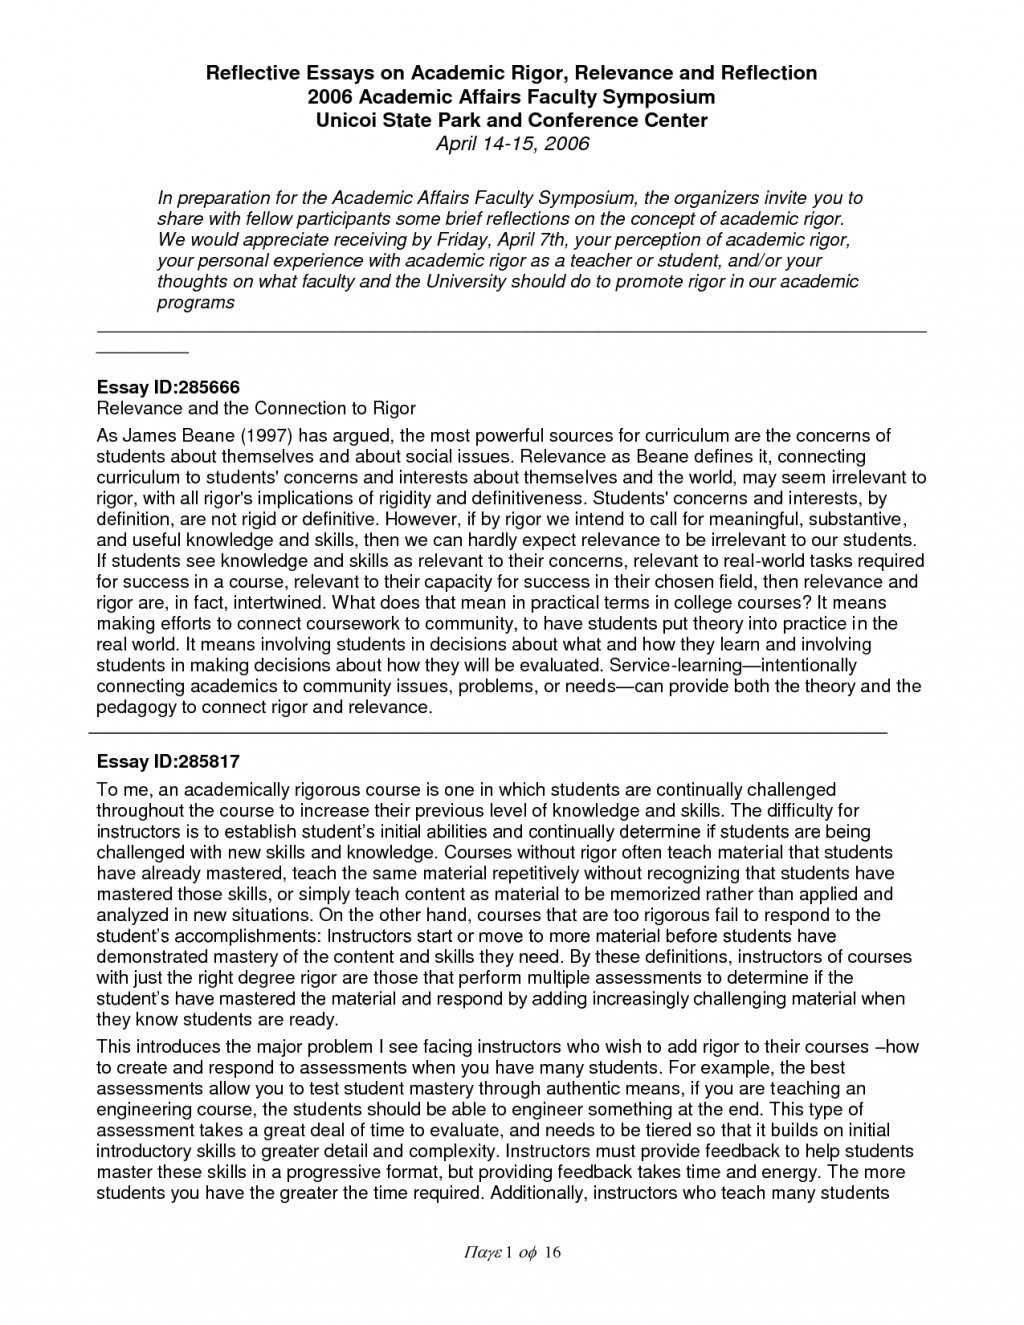 007 Descriptive Essay About Love Ixora Philippinensis Example Of Family Essays For High School Students Pics Admi Unique Examples Sample Questions Narrative Pdf Large